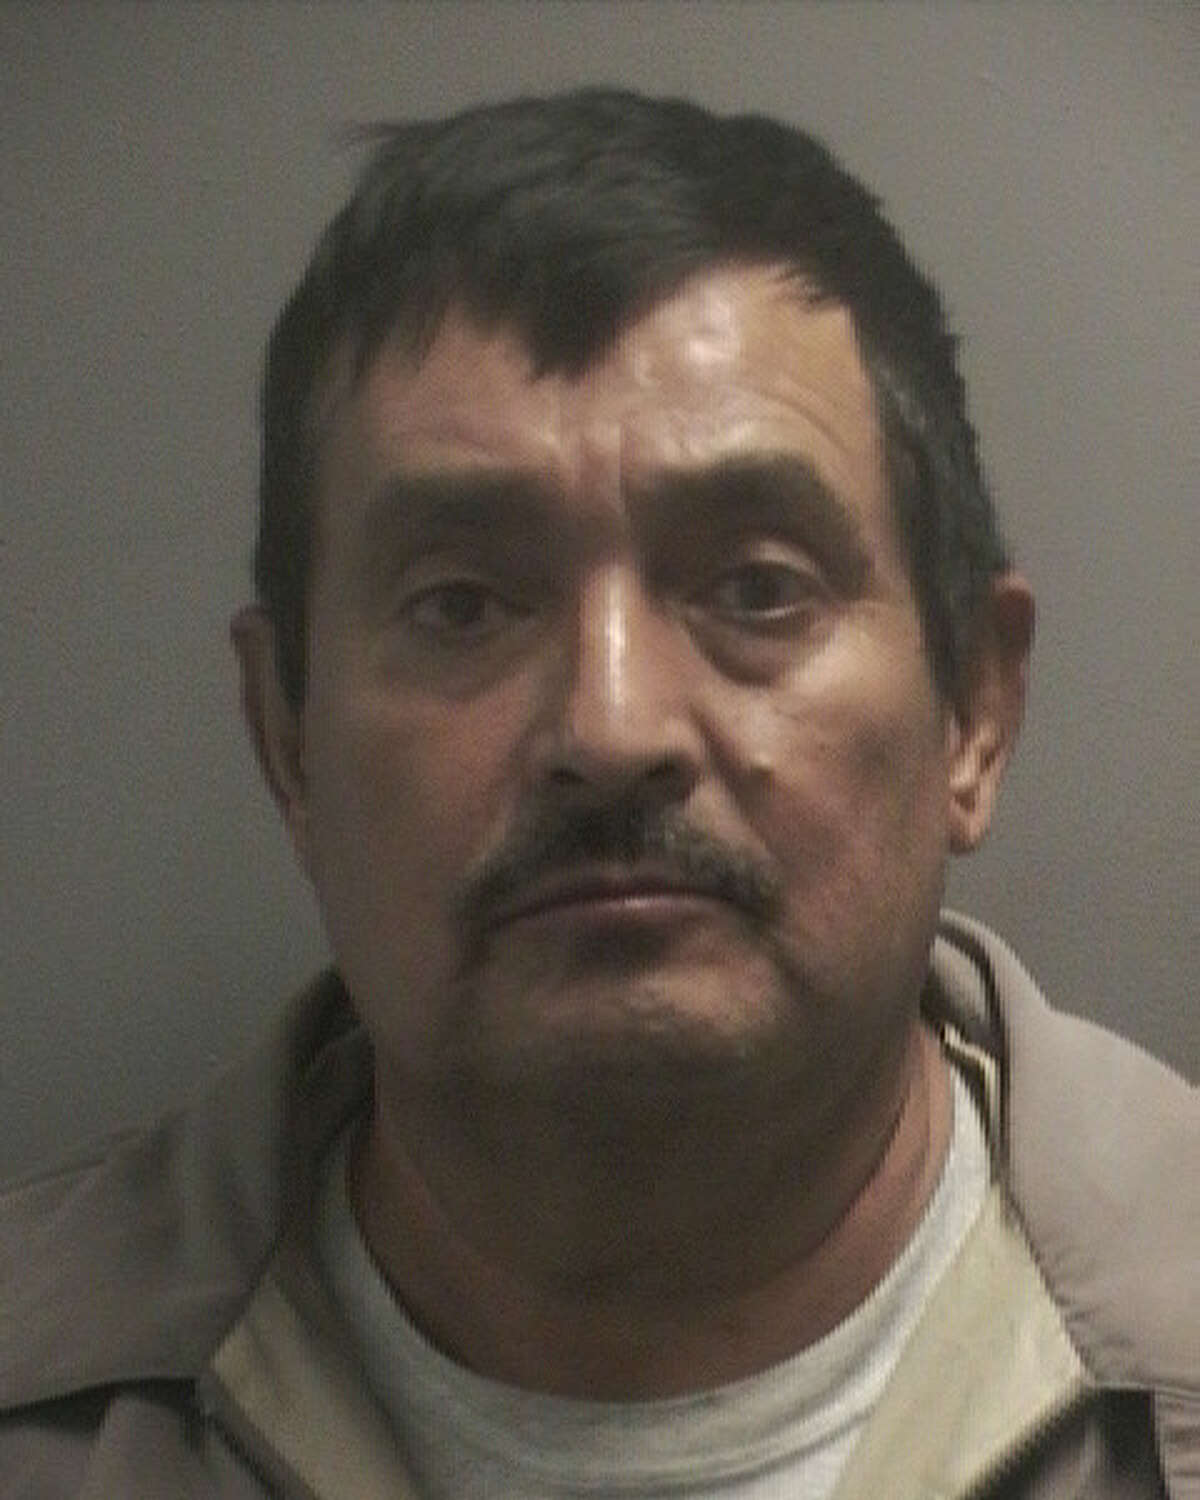 Martin Gutierrez pleaded guilty to the murder of Santiago Godinez and was sentenced to 15 years in state prison.